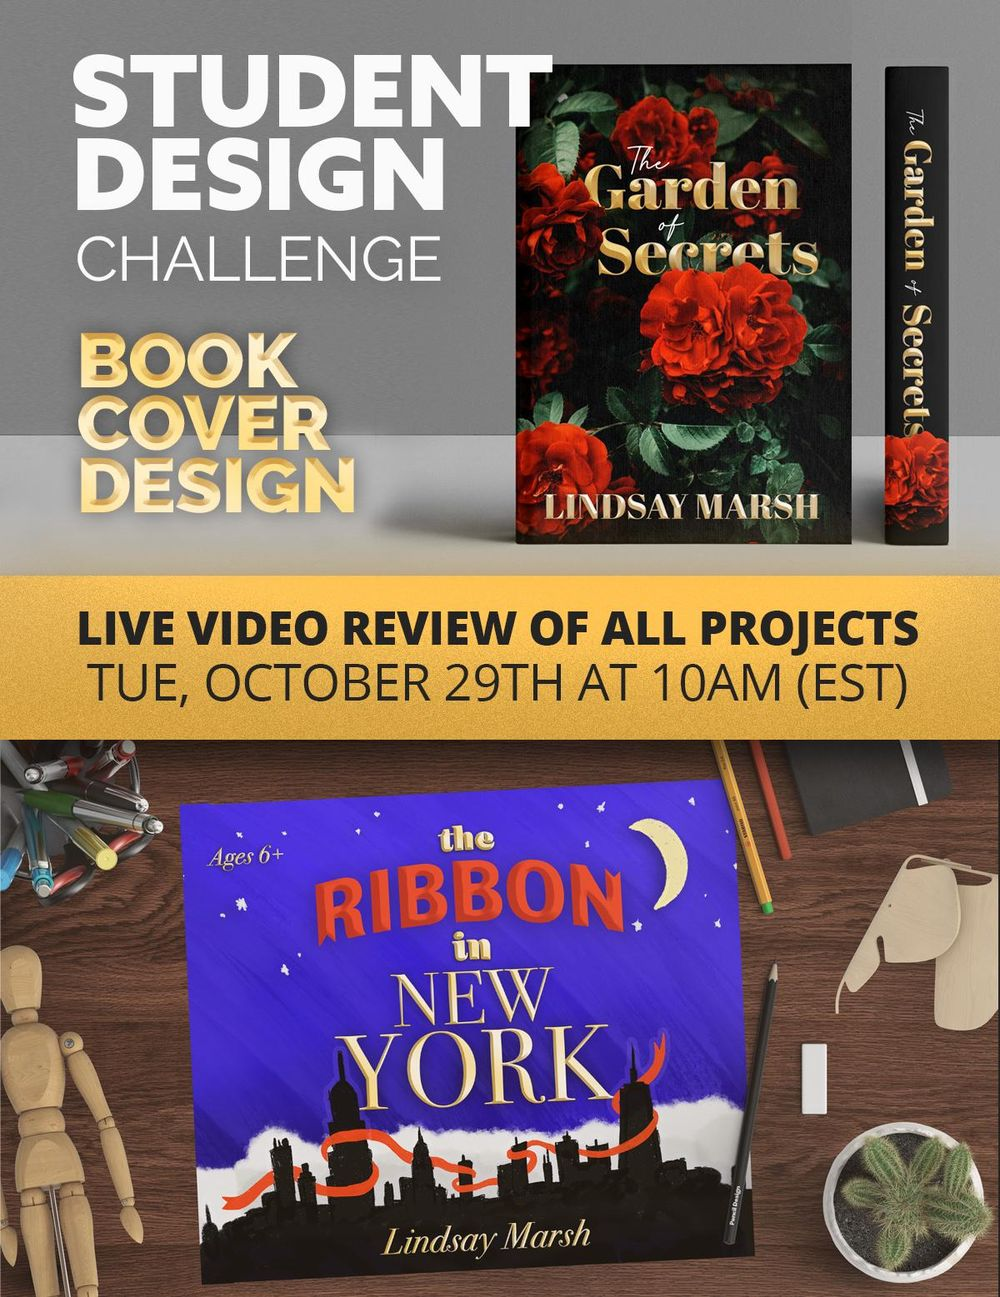 Design A Book Cover Student Design Challenge! - image 1 - student project